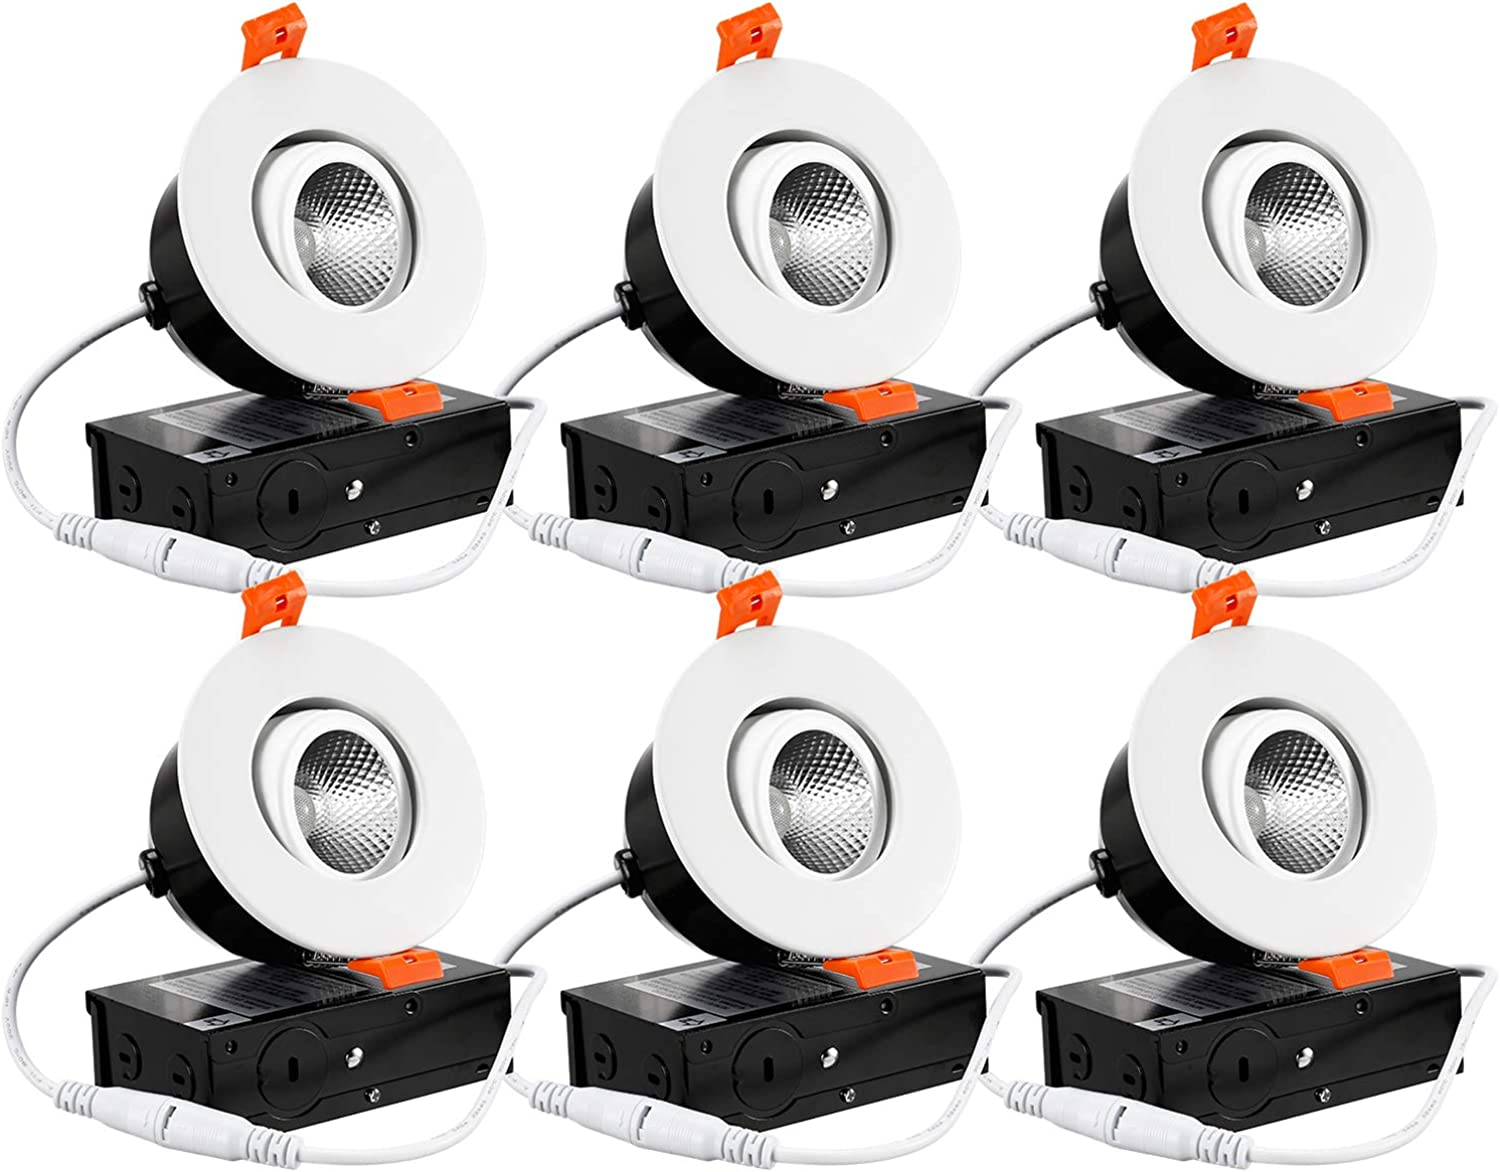 TORCHSTAR 6-Pack 3″ Gimbal LED Dimmable Recessed Light with J-Box, 7W (50W Eqv.) 500lm, Airtight, ETL Energy Star JA8 Title 24, CRI 90+, 3000K Warm White, 5 Years Warranty, White